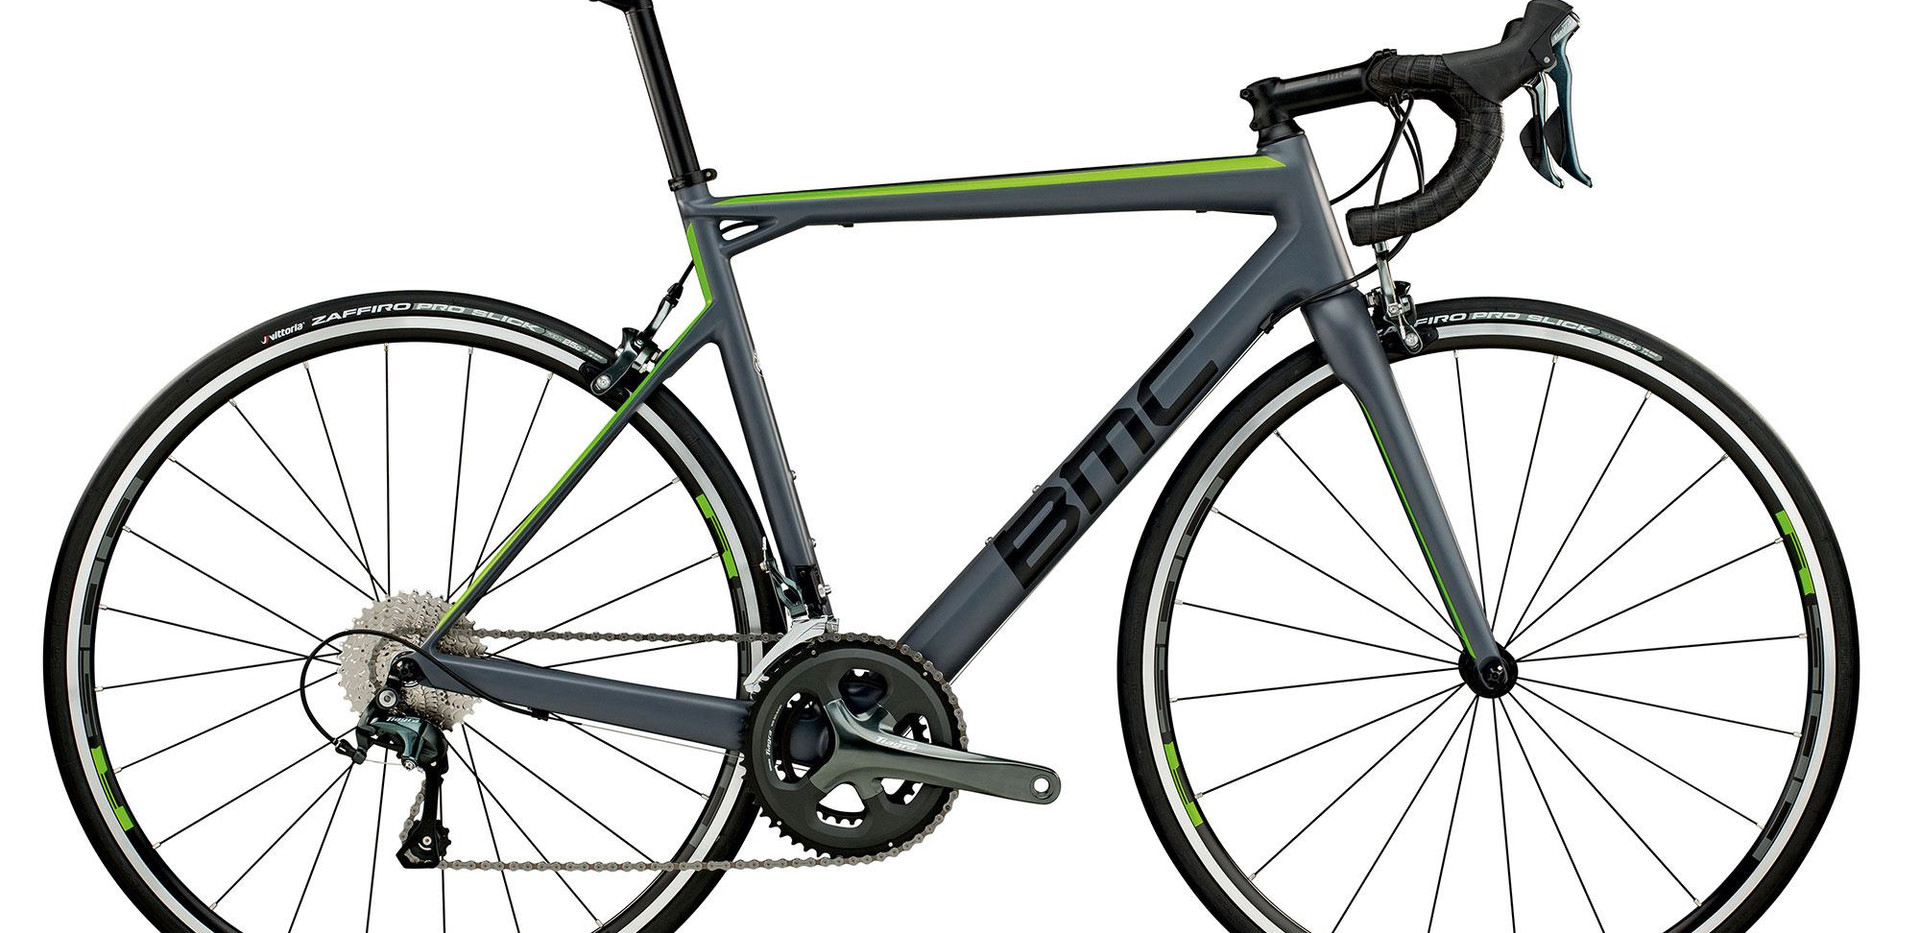 BMC Carbon Road Bike 54cm